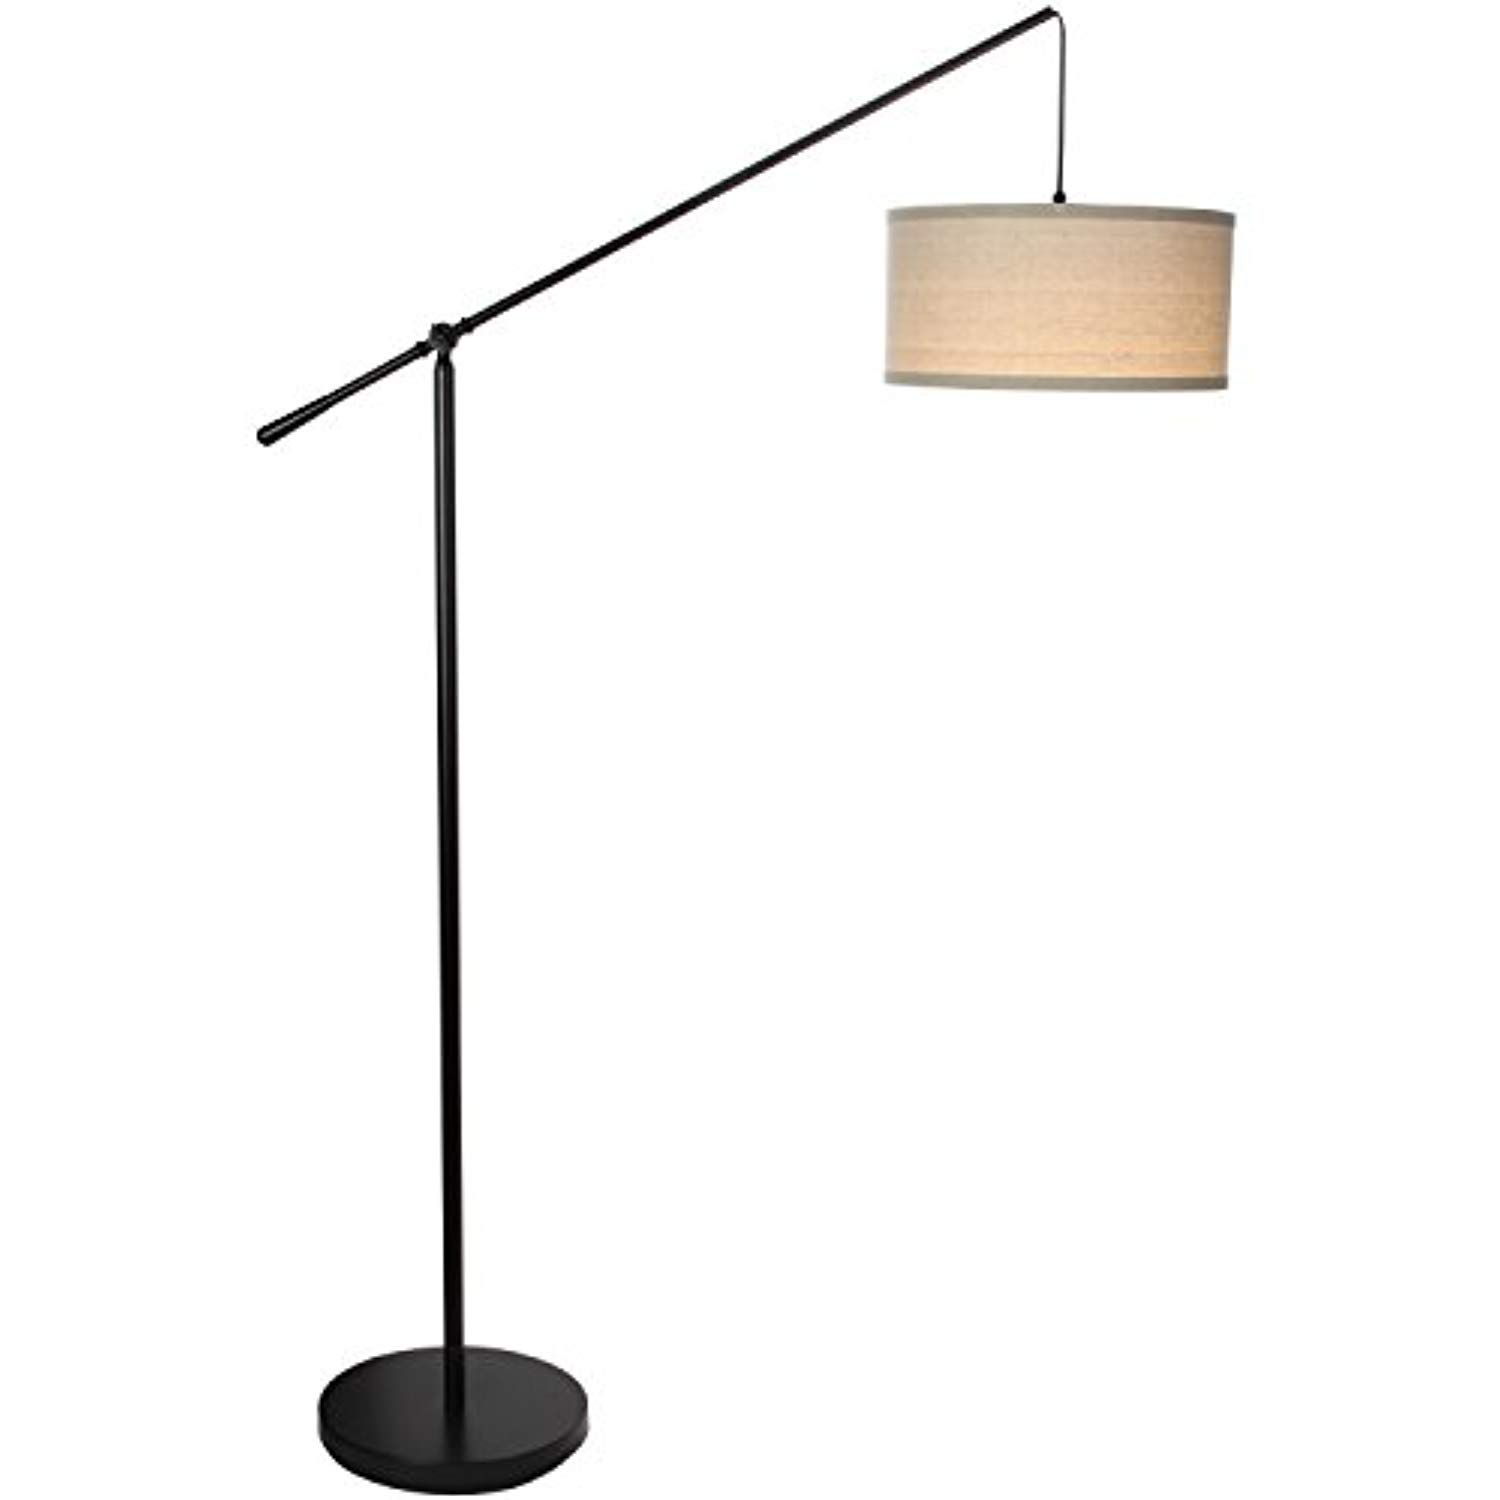 Brightech Hudson 2 Living Room Led Arc Floor Lamp For Behind The Couch Alexa Compatible Pole Hanging Floor Lamp Hanging Lights Living Room Arc Floor Lamps